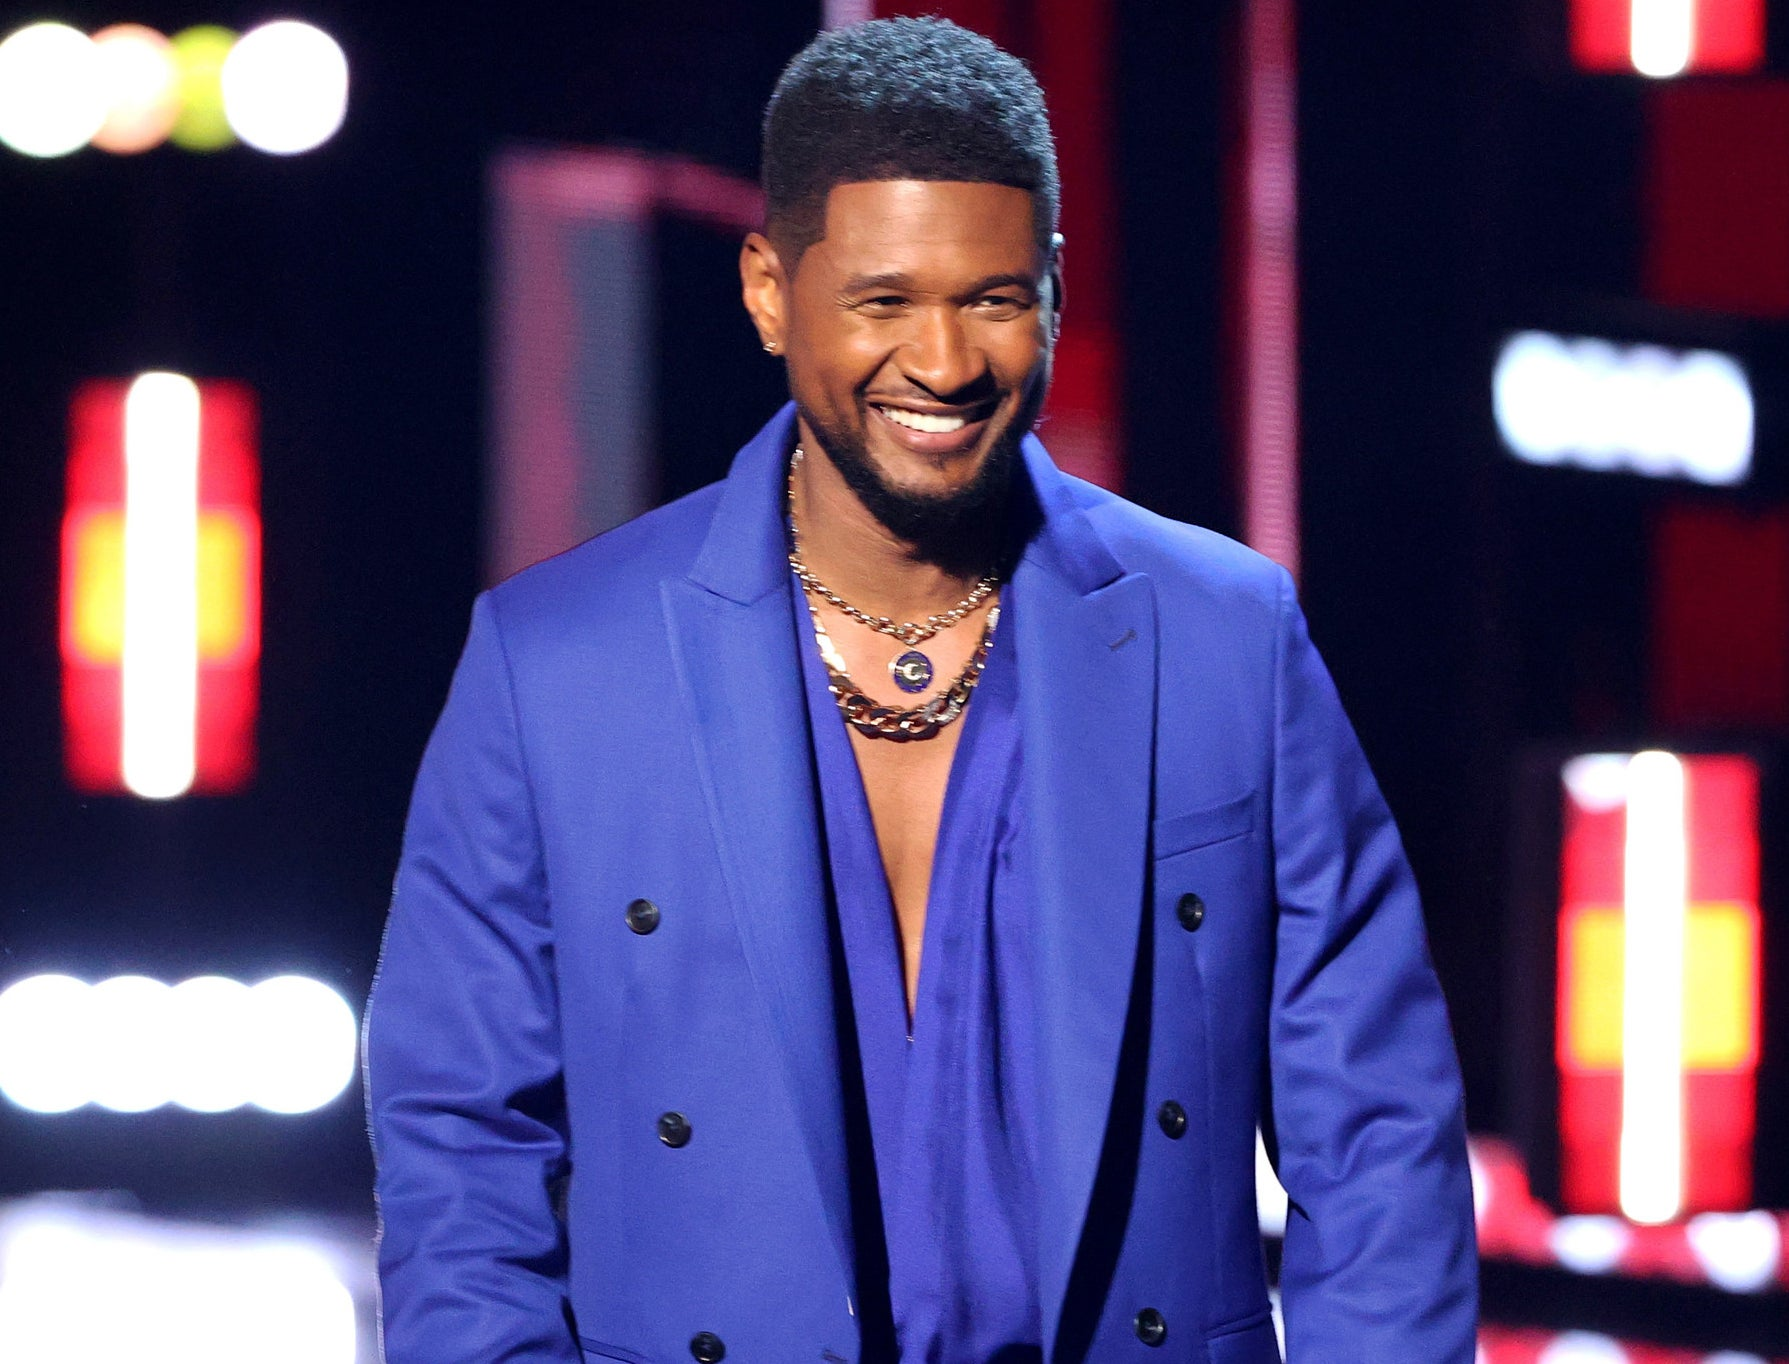 Usher smiles while wearing a blue suit on stage